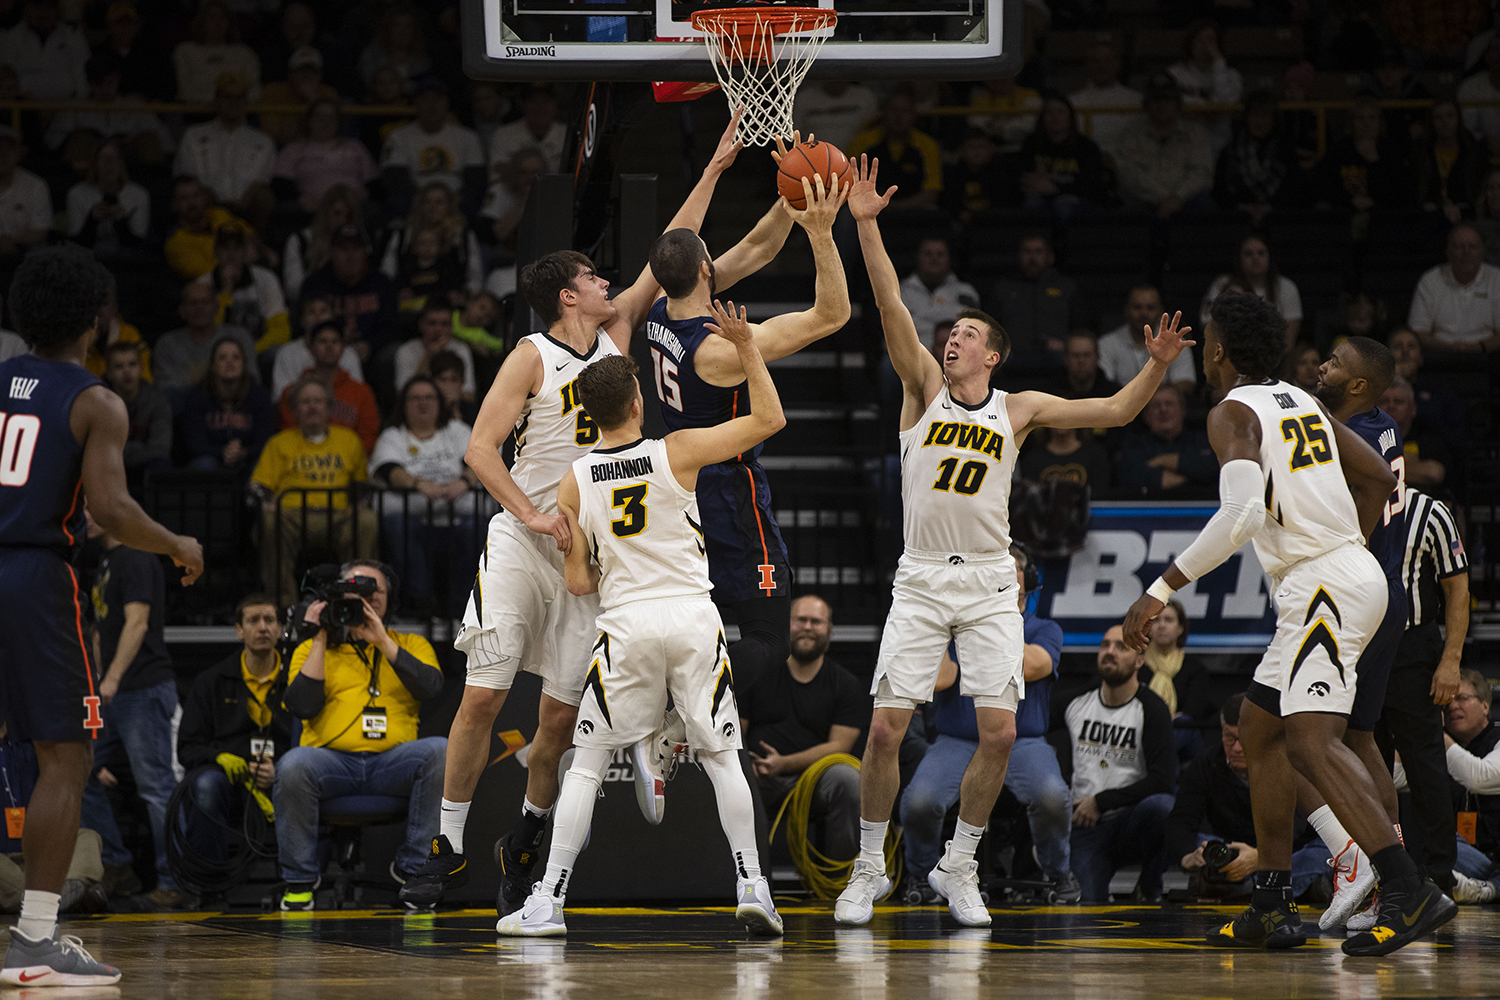 Iowa%27s+Joe+Wieskamp+%2810%29+guards+the+Illinois+basket+during+the+Iowa%2FIllinois+men%27s+basketball+game+at+Carver-Hawkeye+Arena+on+Sunday%2C+January+20%2C+2019.+The+Hawkeyes+defeated+the+Fighting+Illini%2C+95-71.+